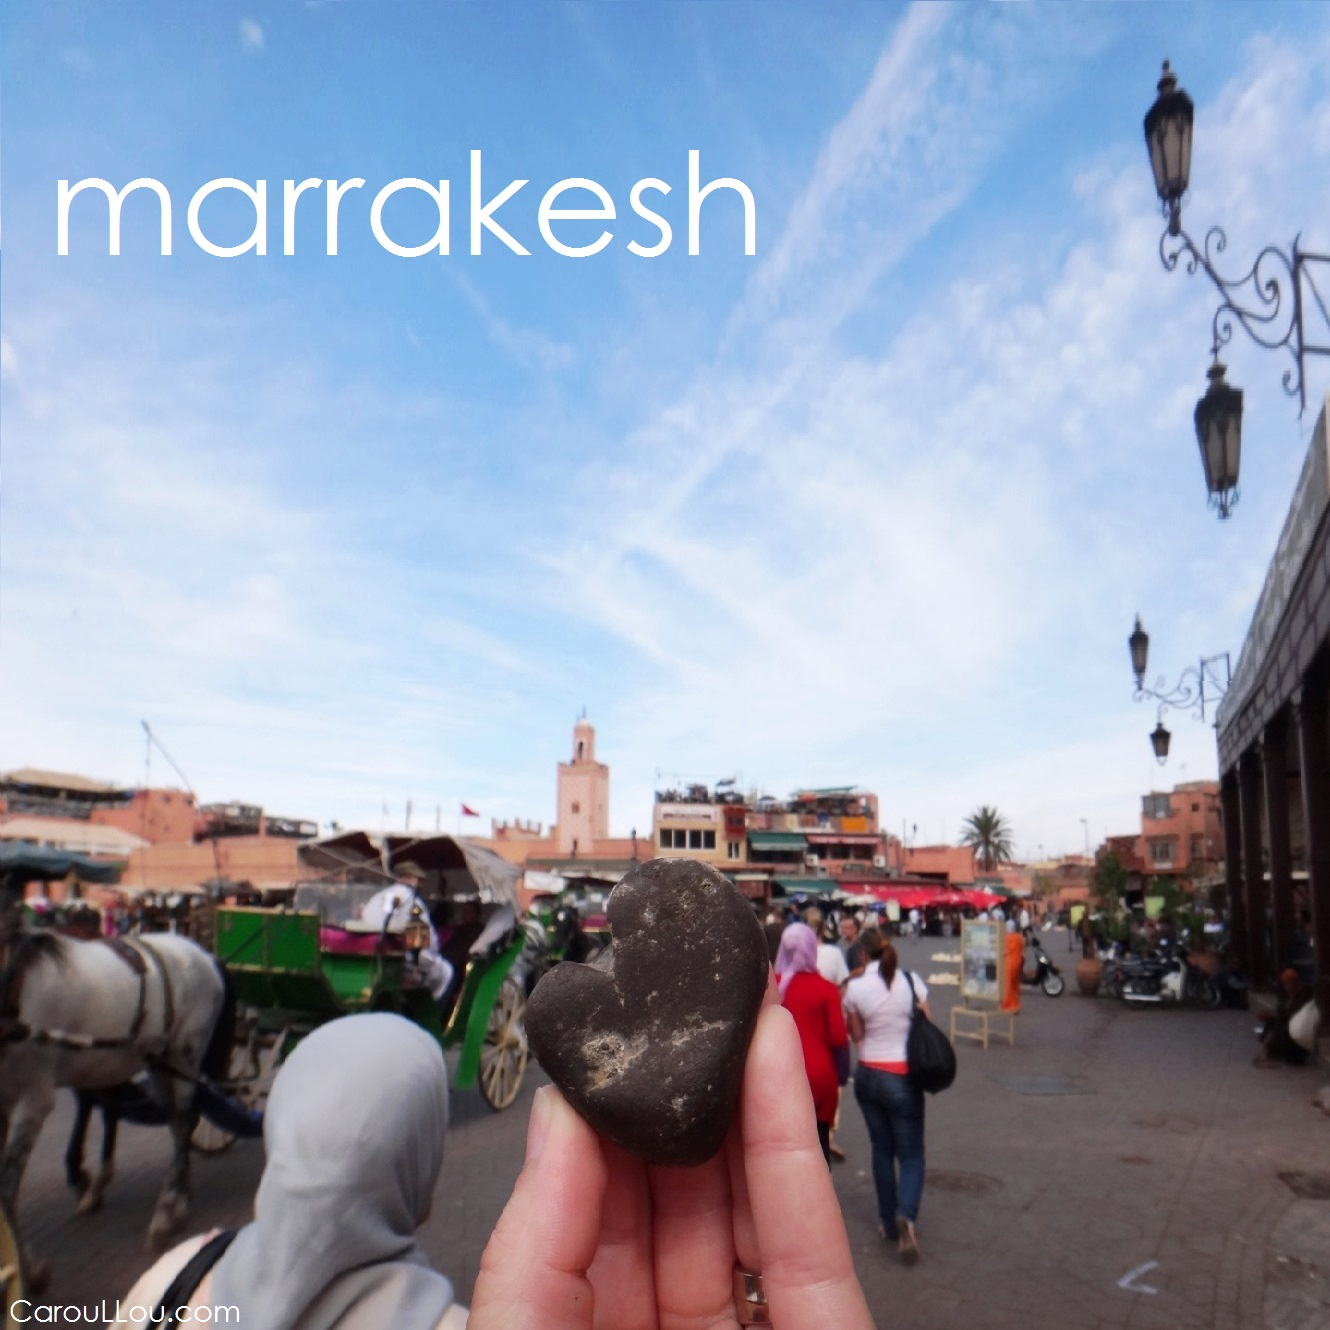 CarouLLou.com Carou LLou in Marrakesh heart +-